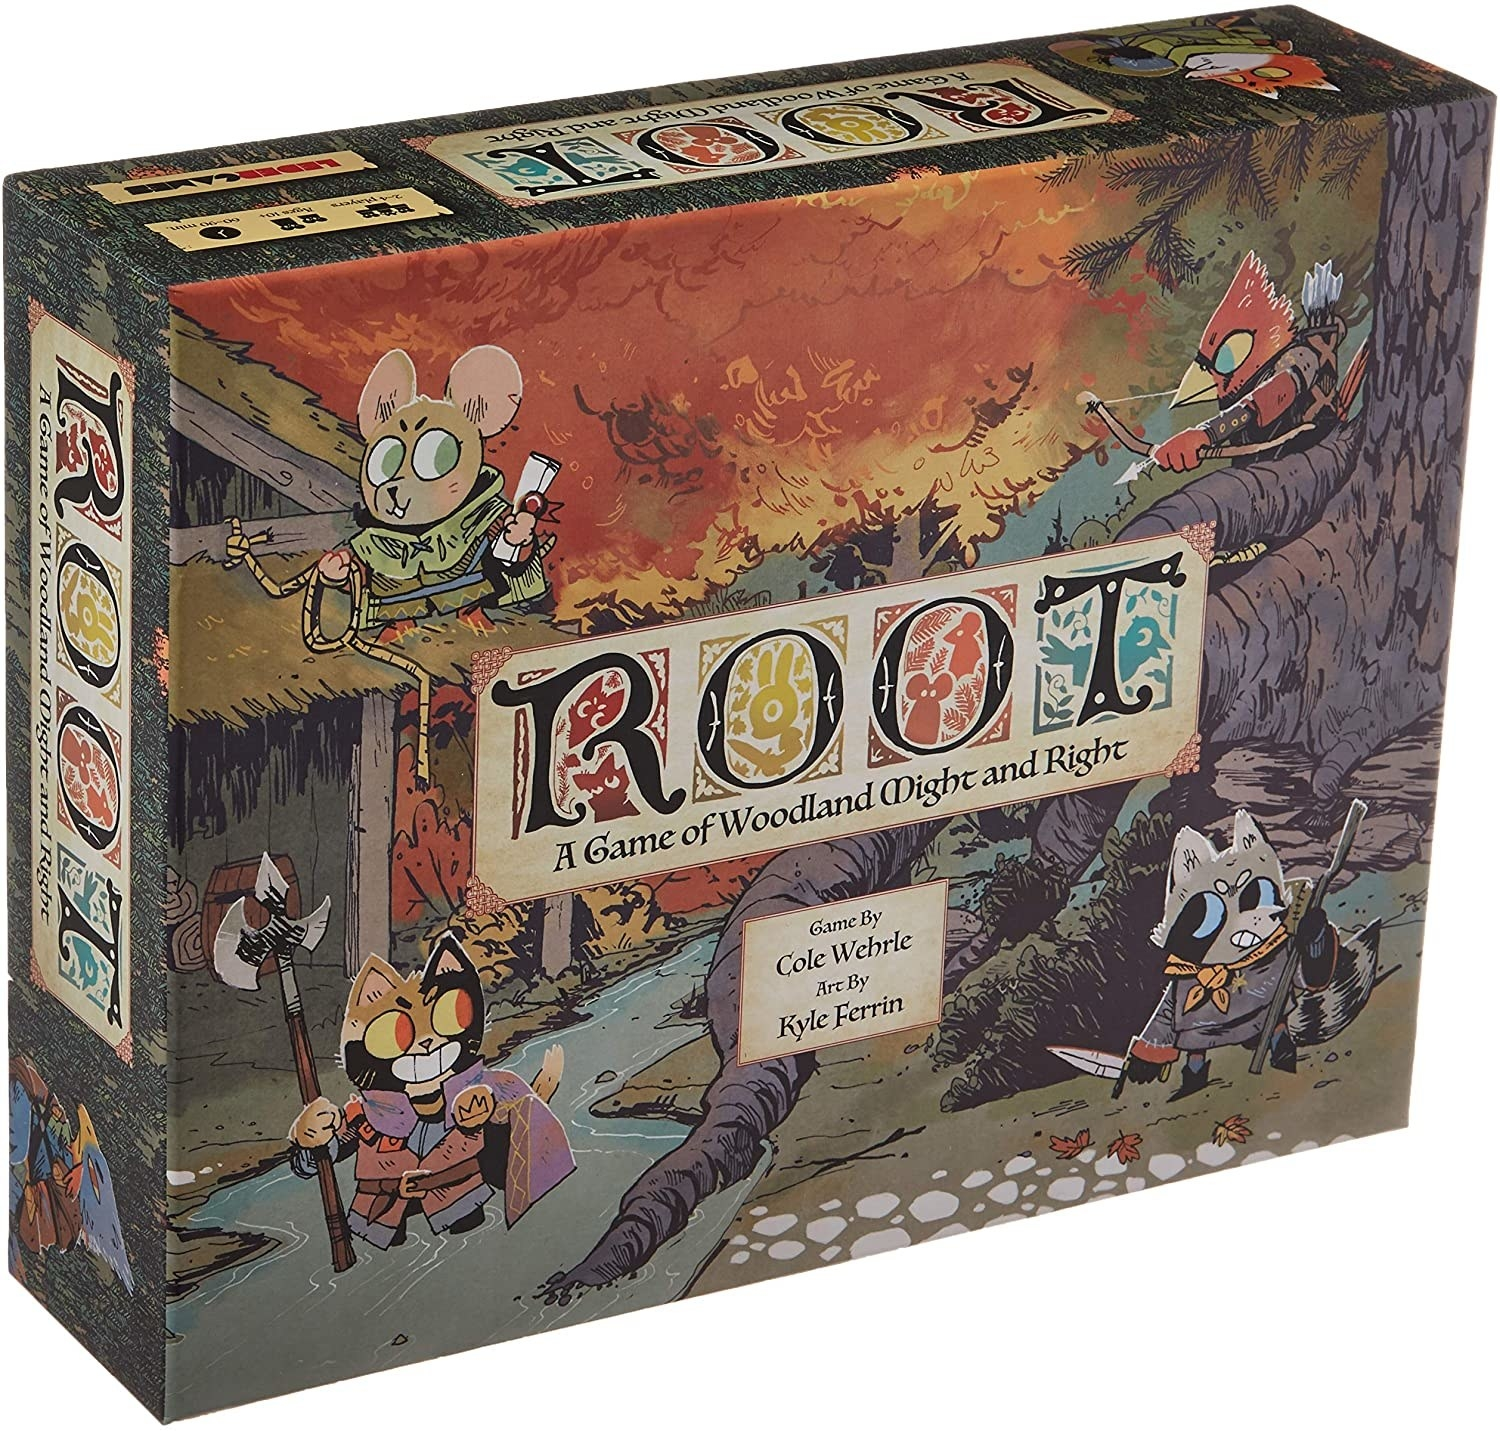 Root board game box with woodland creatures illustrated on front